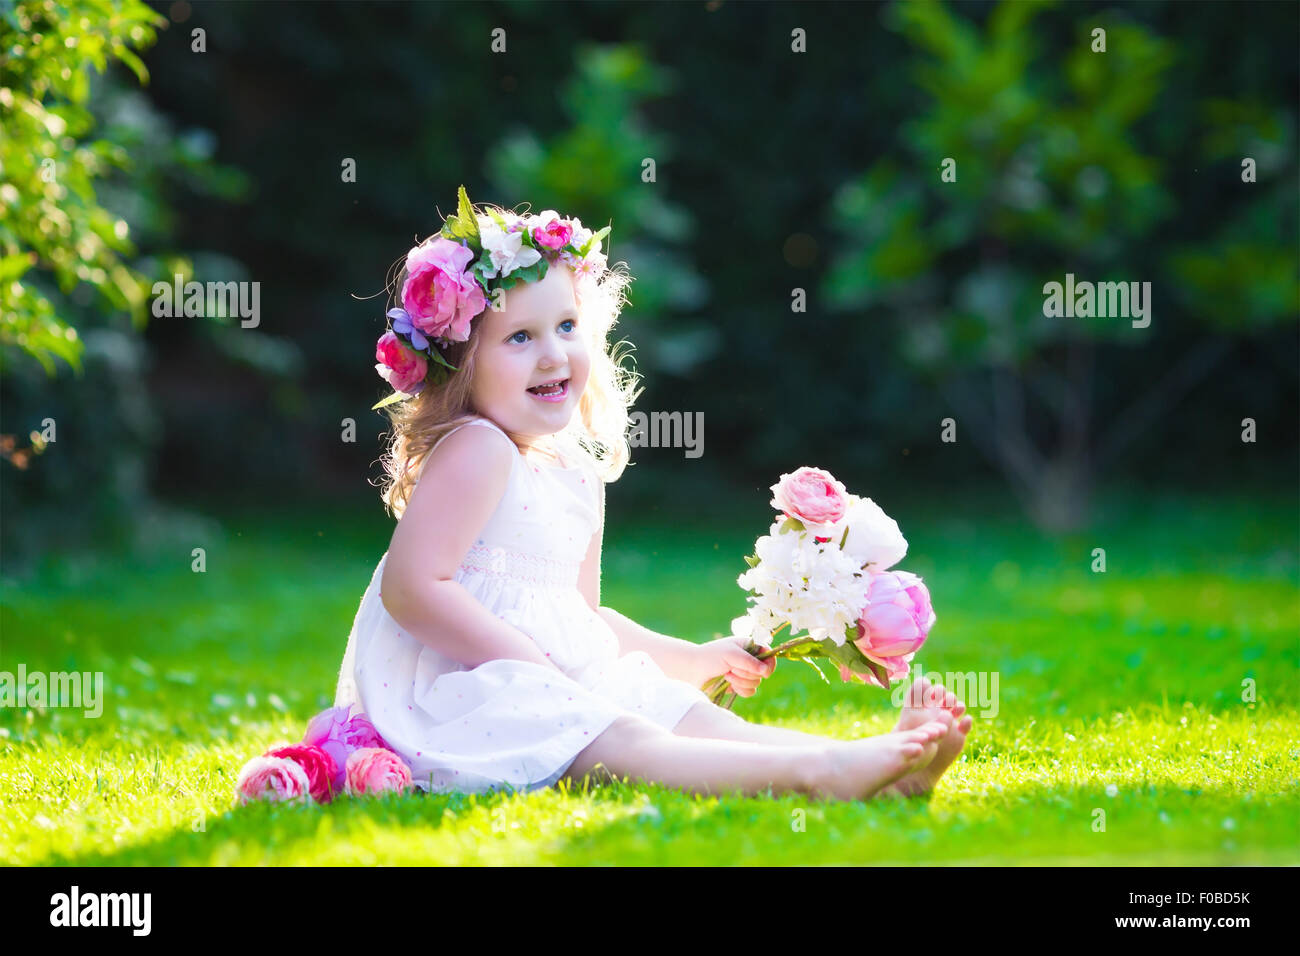 9994a88cd Little cute girl with pink flowers. Child wearing a white dress ...